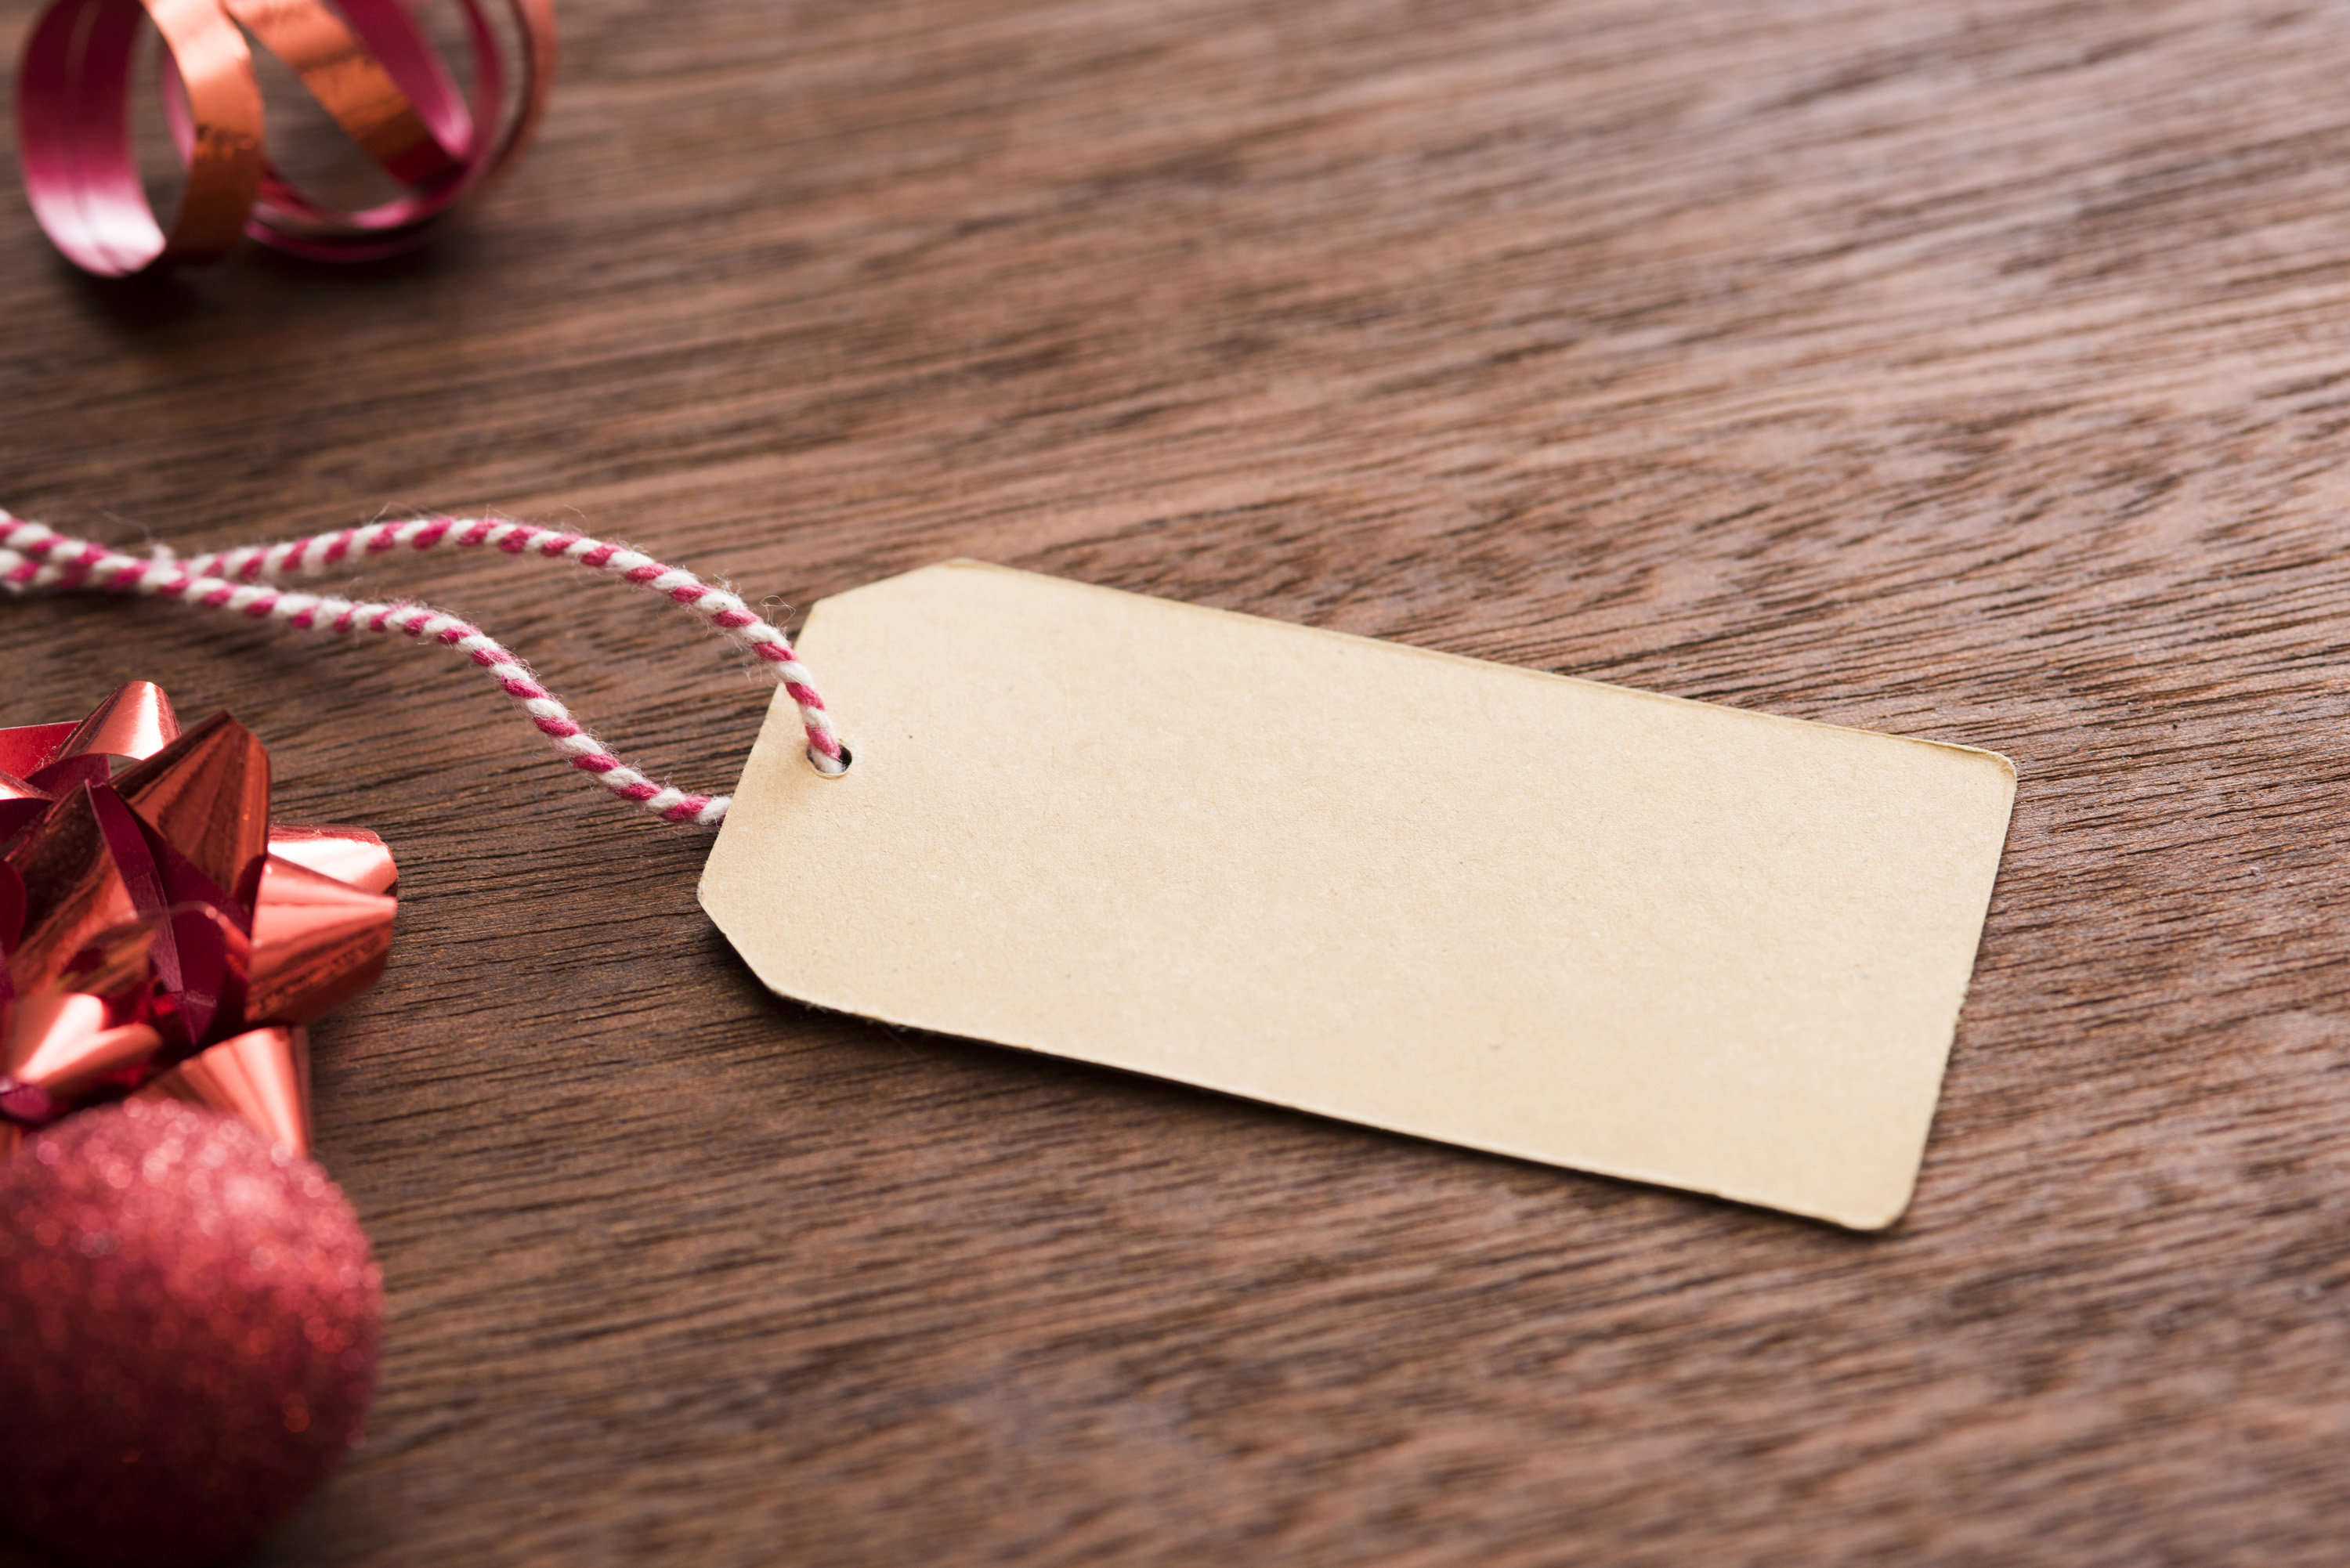 Blank Christmas gift tag with red bow , baubles and ribbon forming a side border over textured wood, copy space for your holiday greeting